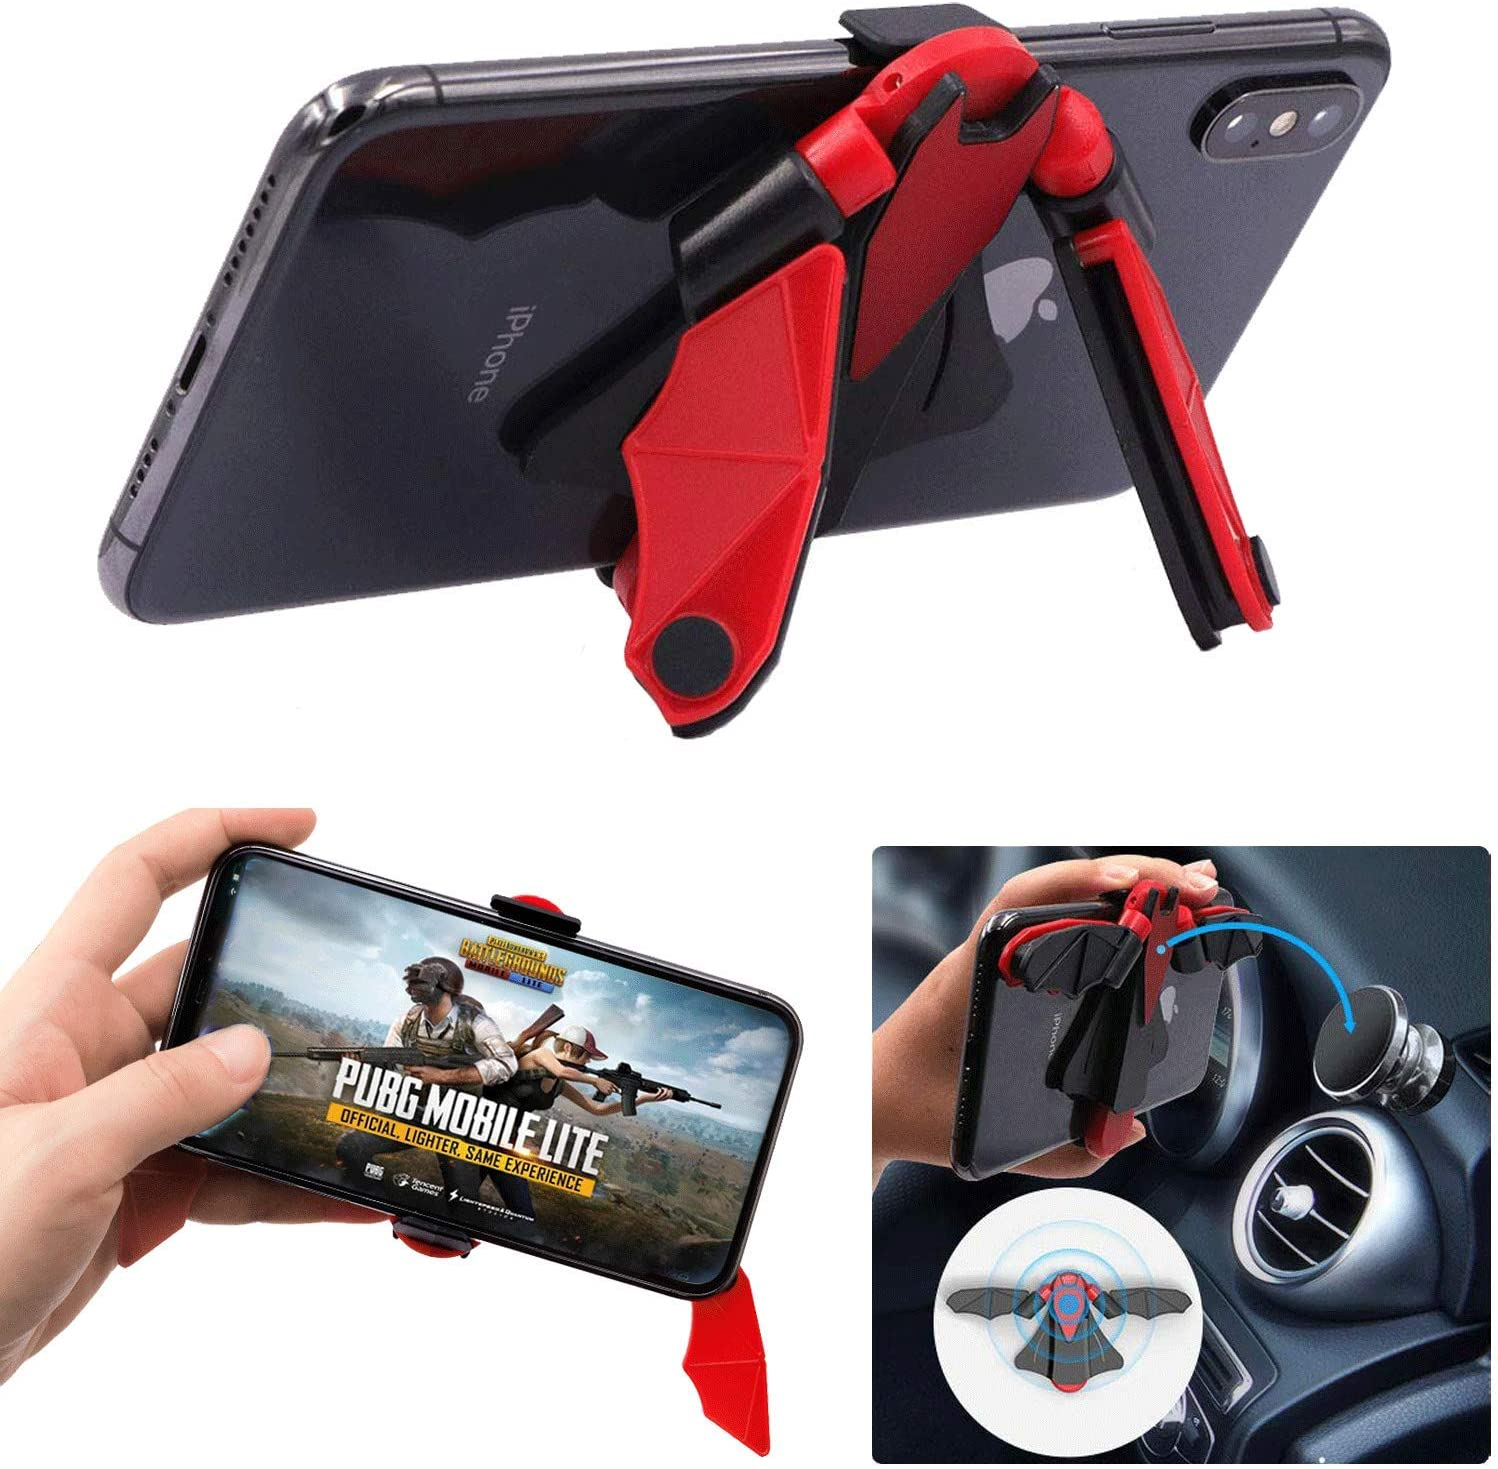 Adjustable Phone Stand, Online Classes Phone Stand, Gamepad Controller Grip, Desktop Phone Holder Cradle Dock for Magnetic Car Mount Compatible with Phone 11 Pro Xs Xs Max Xr X 8 -Red Black